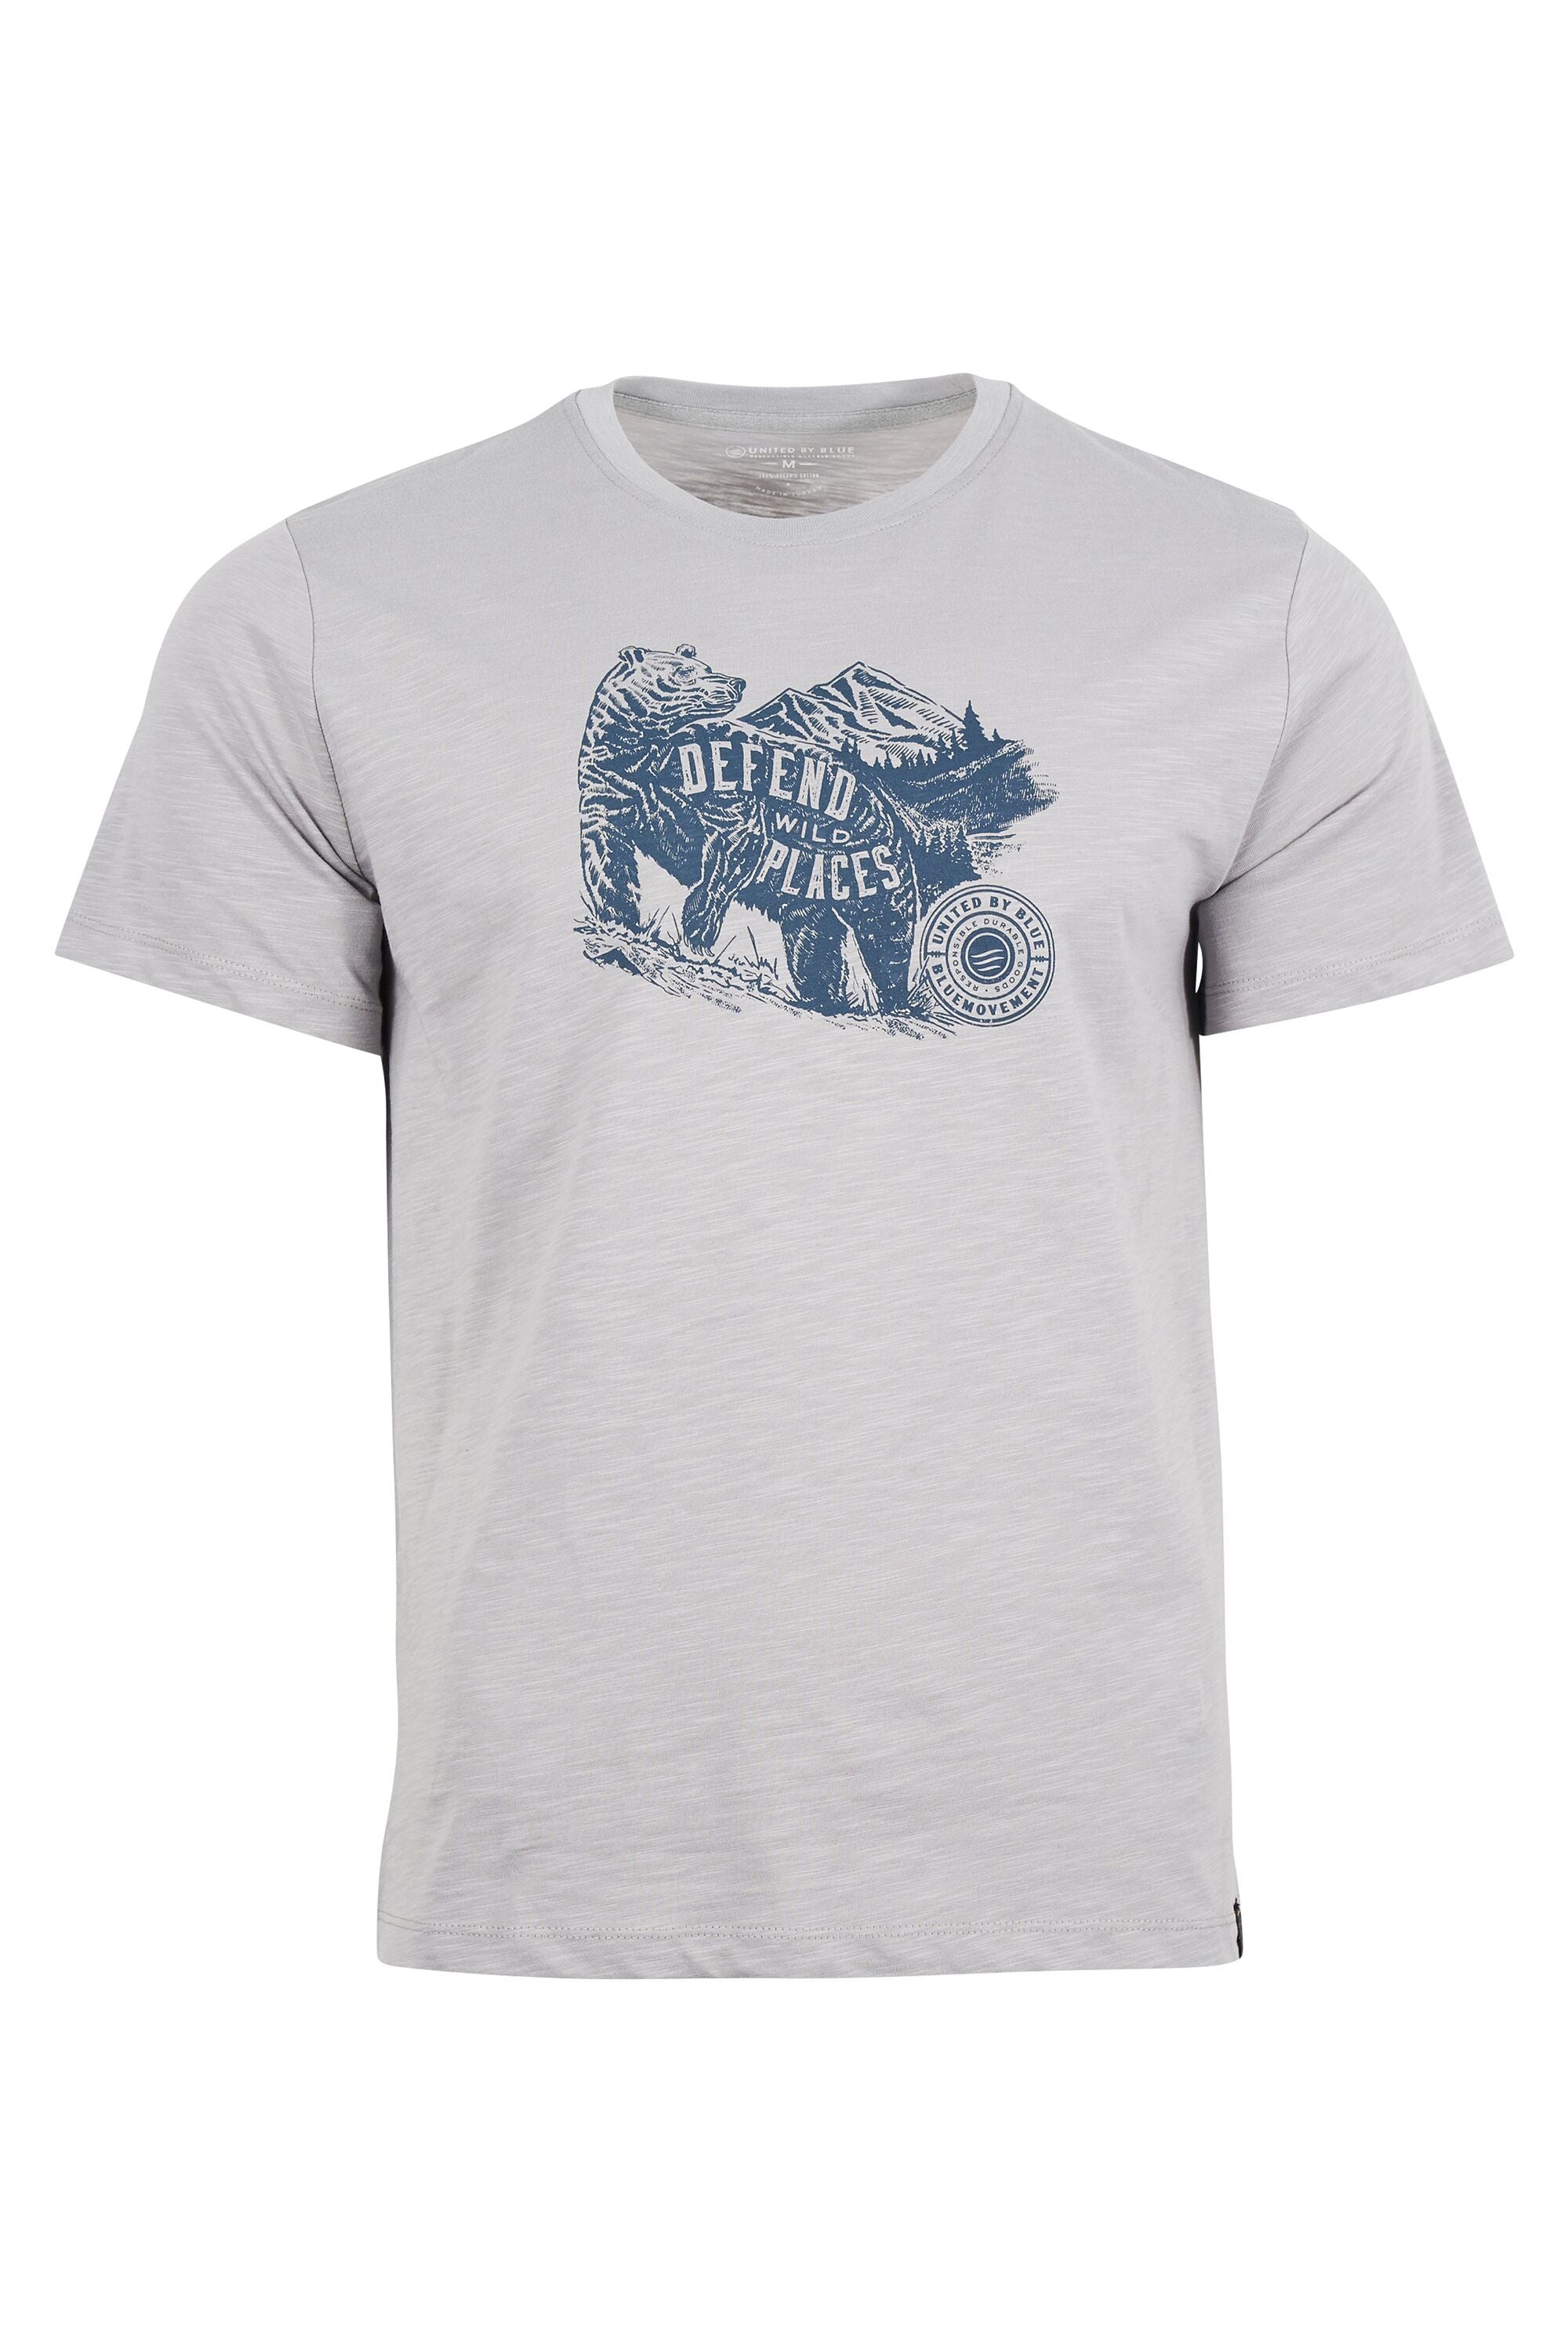 Defend Wild Places SS Graphic Tee